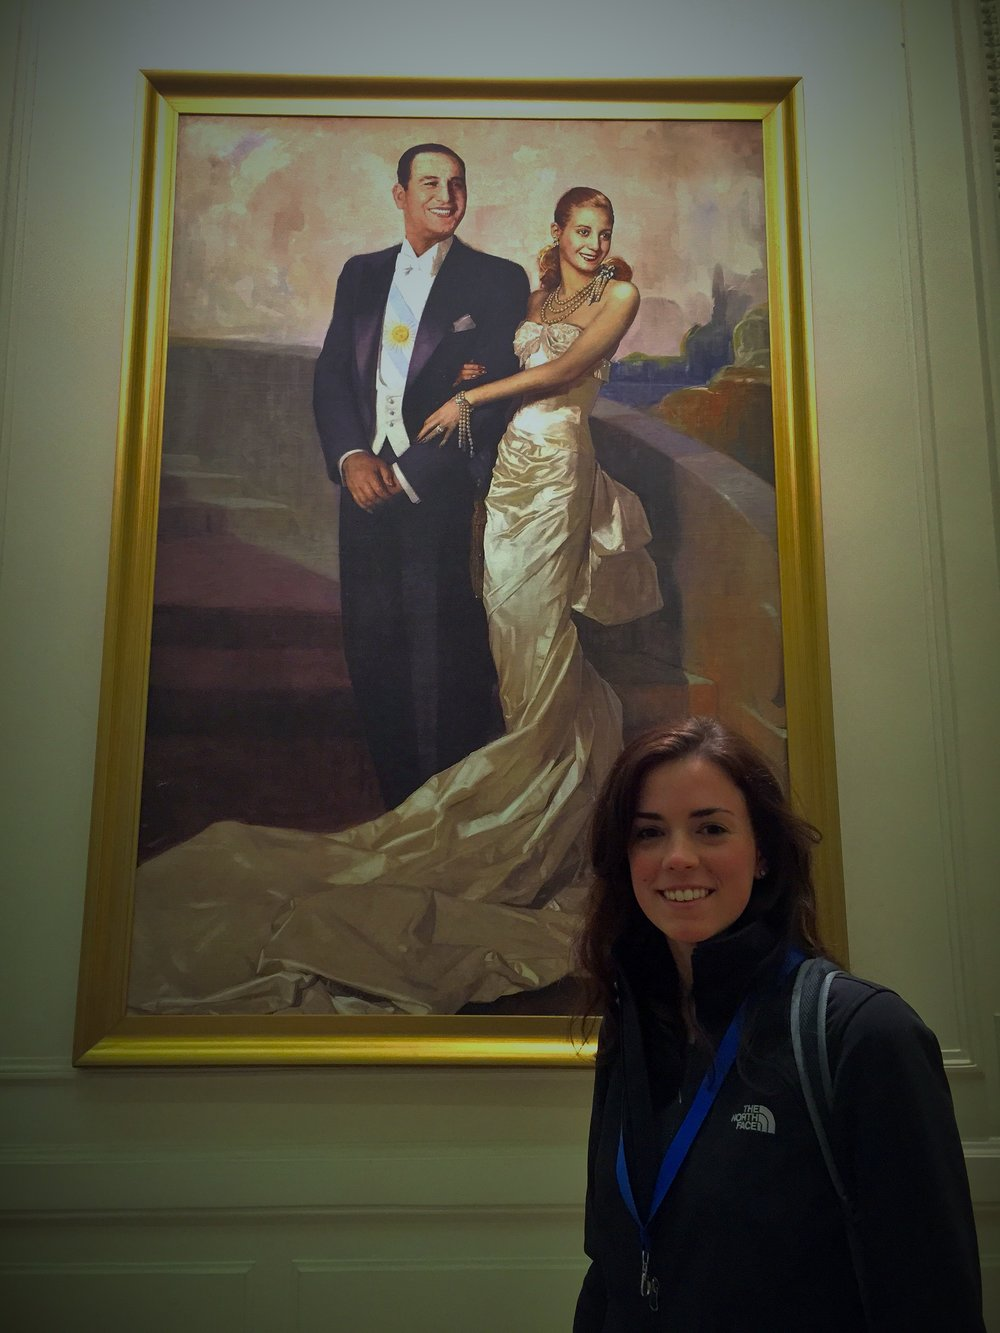 Portrait of Eva and Juan Peron hanging in Casa Rosada, the presidential palace.